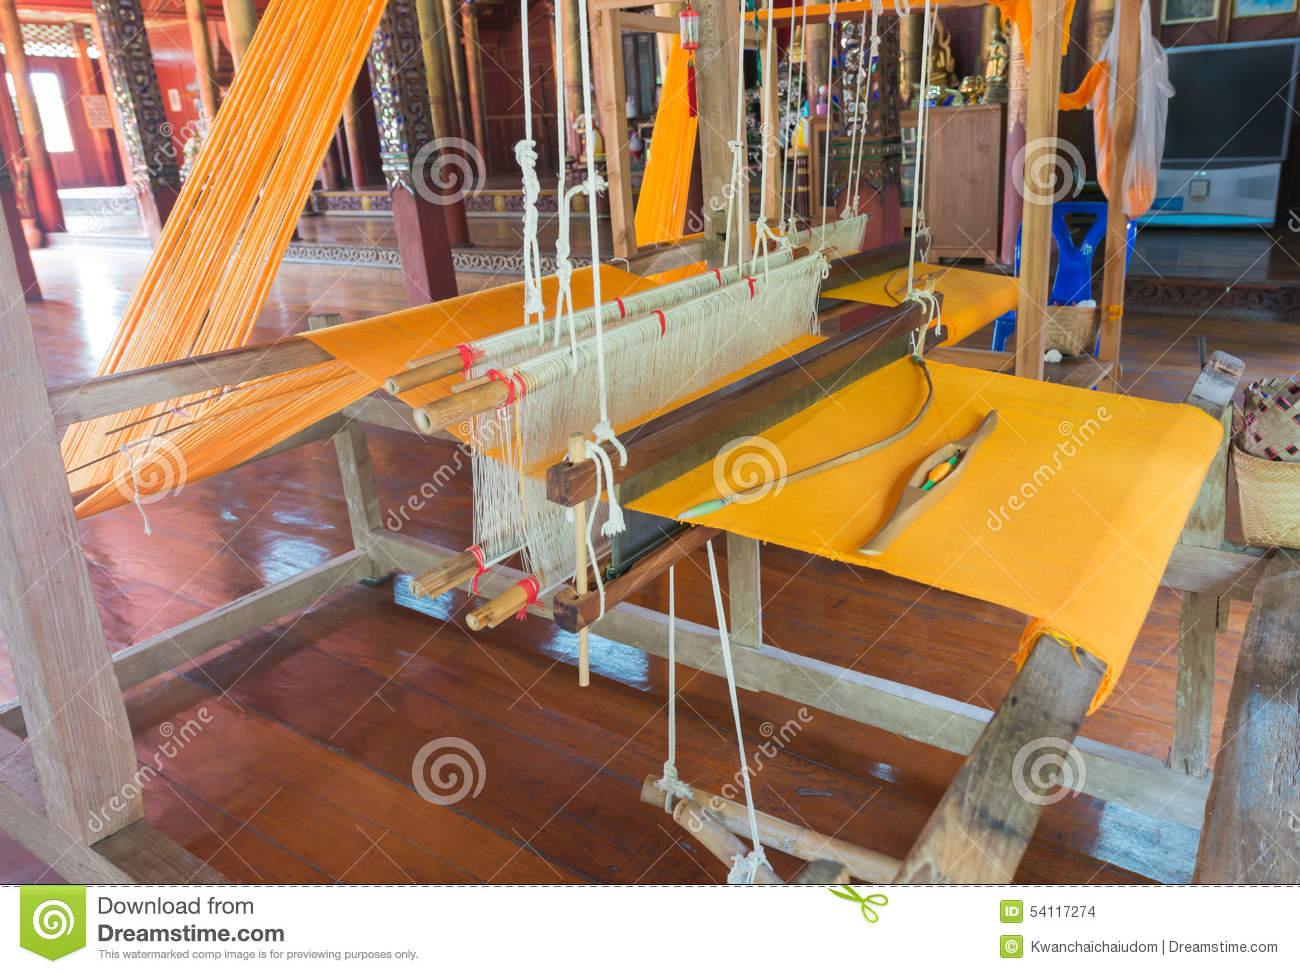 Old Weaving Machine Stock Images - Download 1,953 Royalty